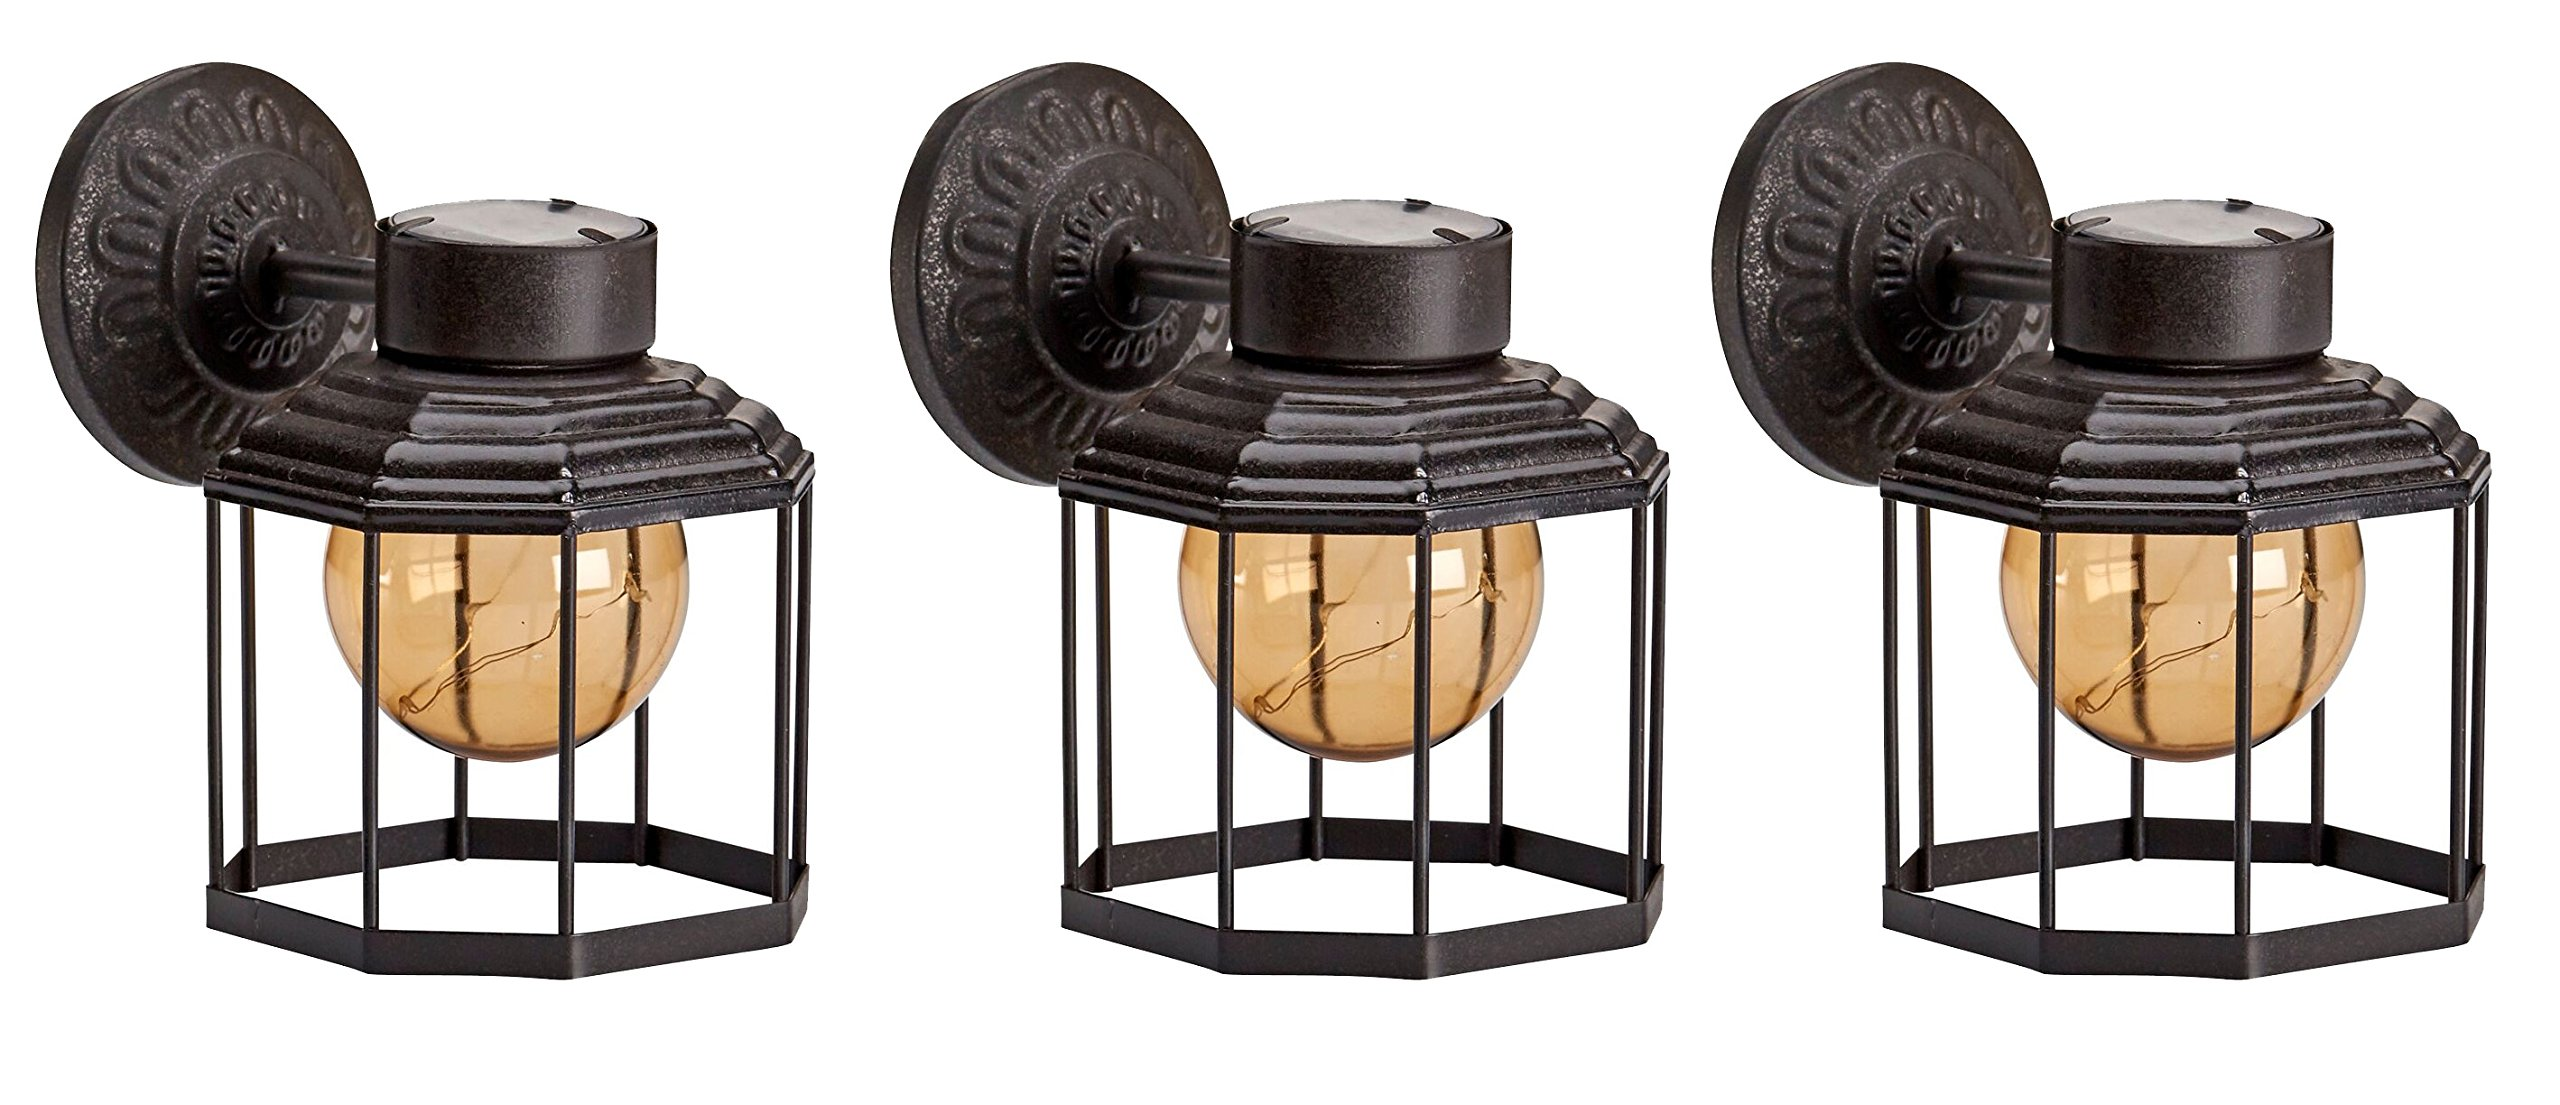 Solar Metal Lantern - Bundle of 3 -Newport by Original Treasures